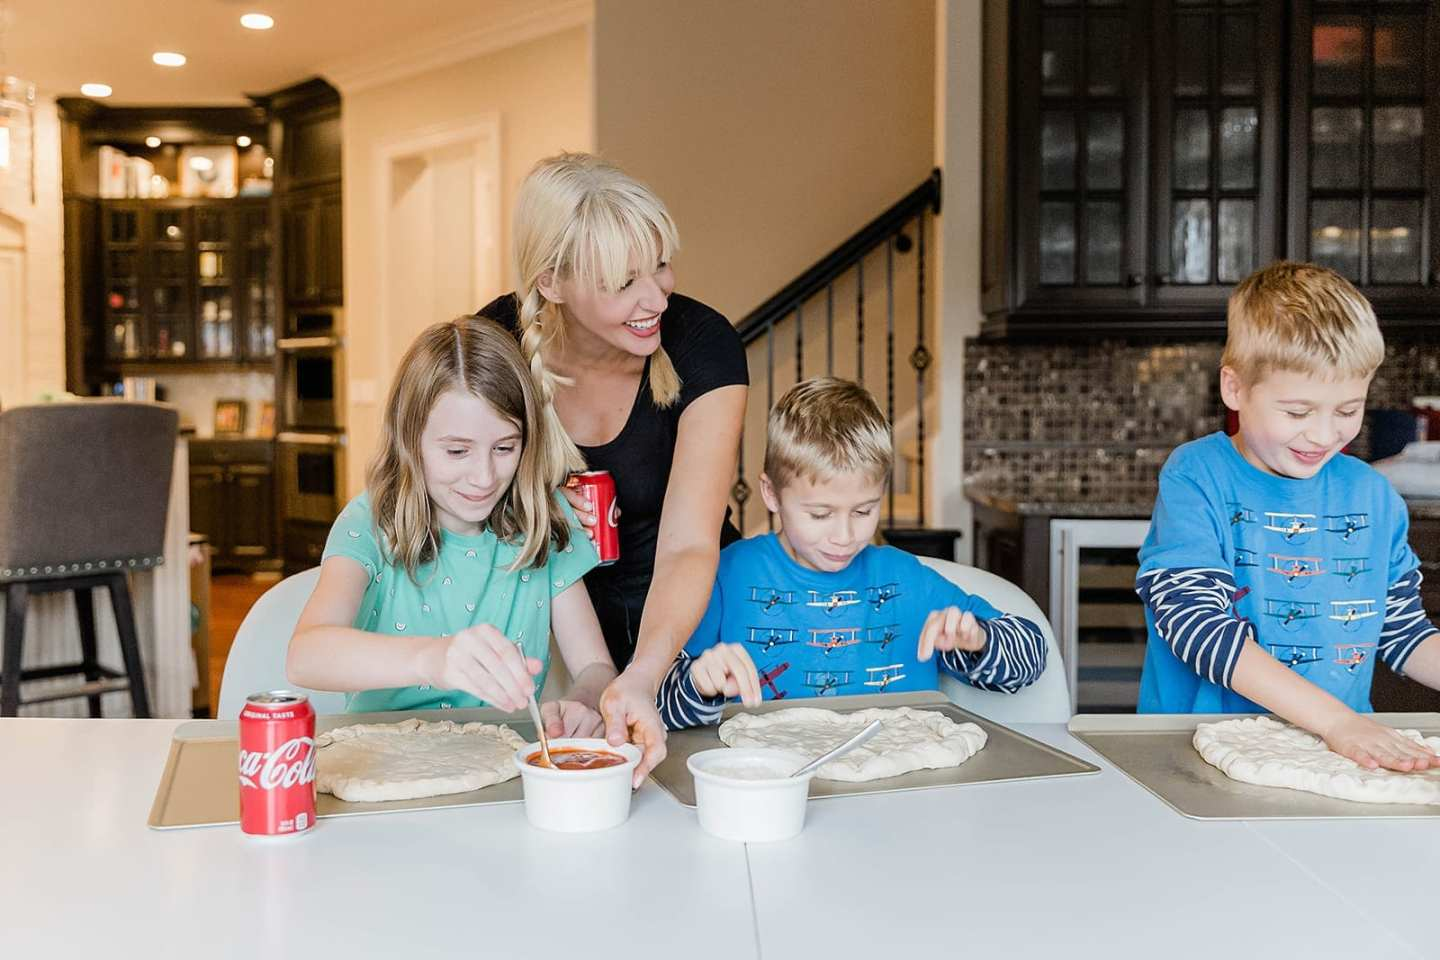 Easy DIY Pizza with Publix Pizza Dough. Have an easy family dinner with Publix pizza dough and Coke. My kids love making their own pizza and this dough is so yummy!